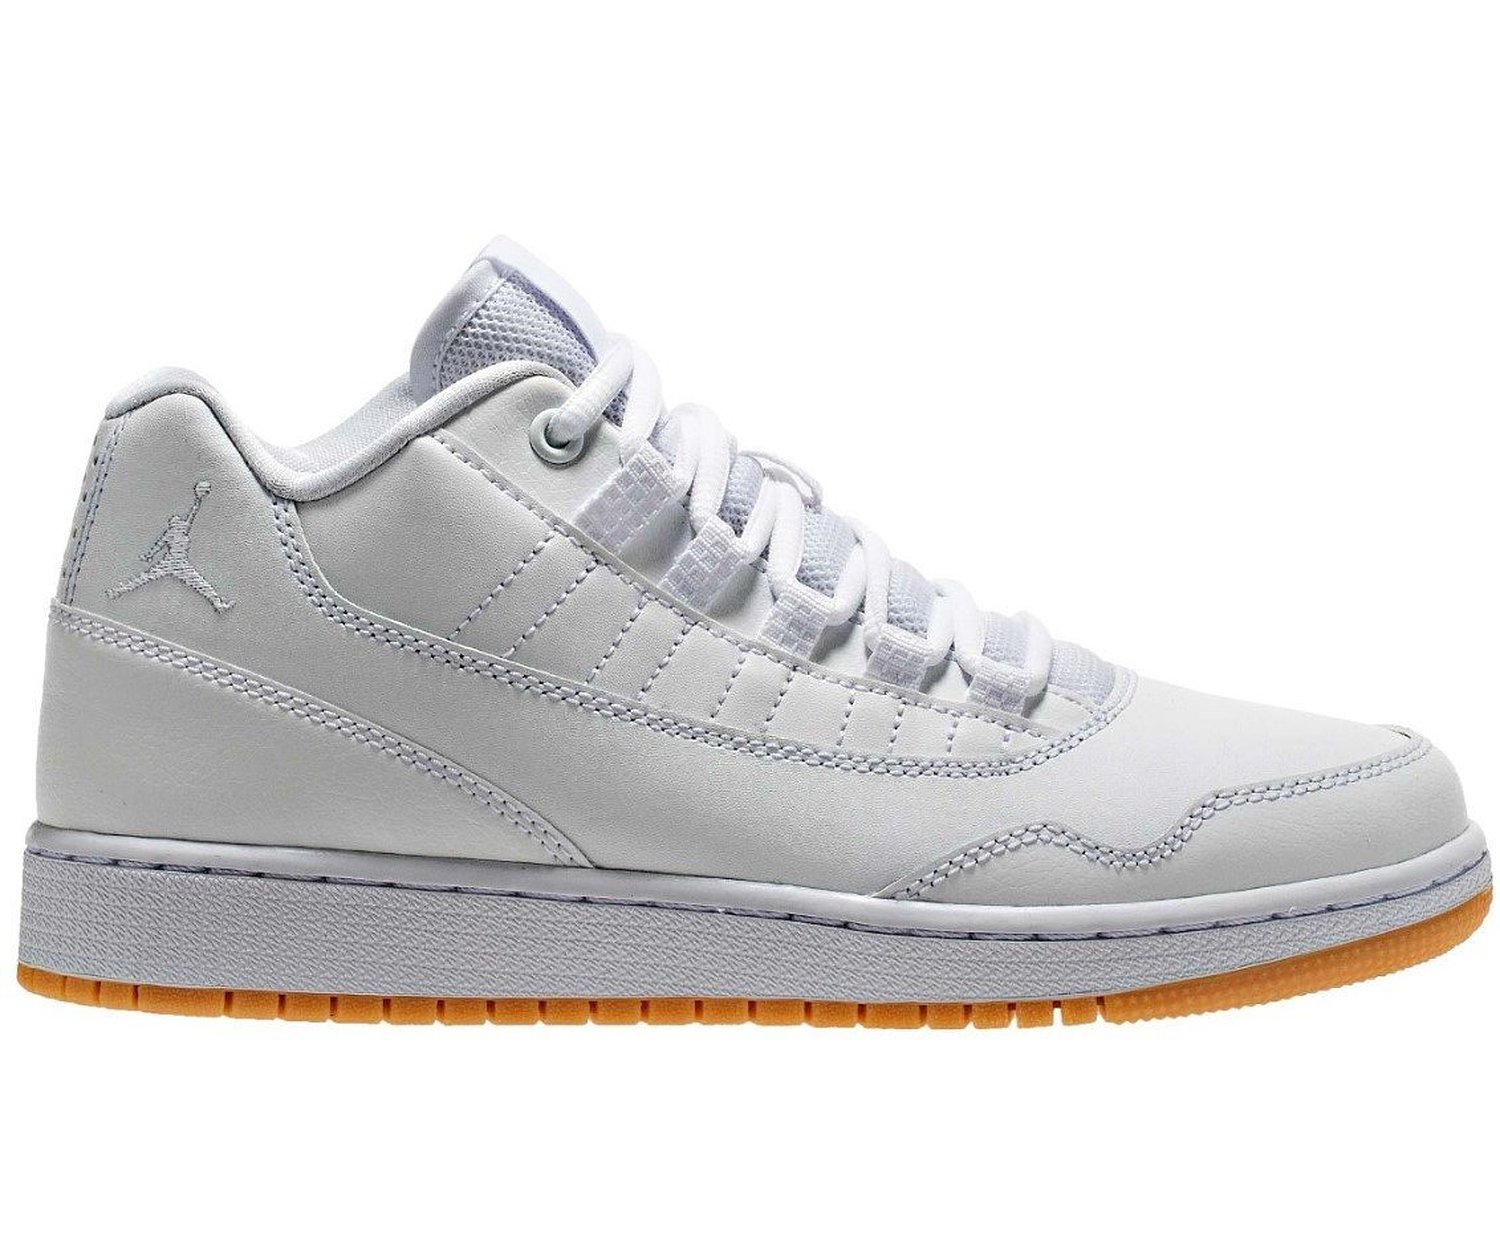 sale retailer b3fe2 22025 Get Quotations · NIKE Jordan Executive Low BH Basketball Shoes